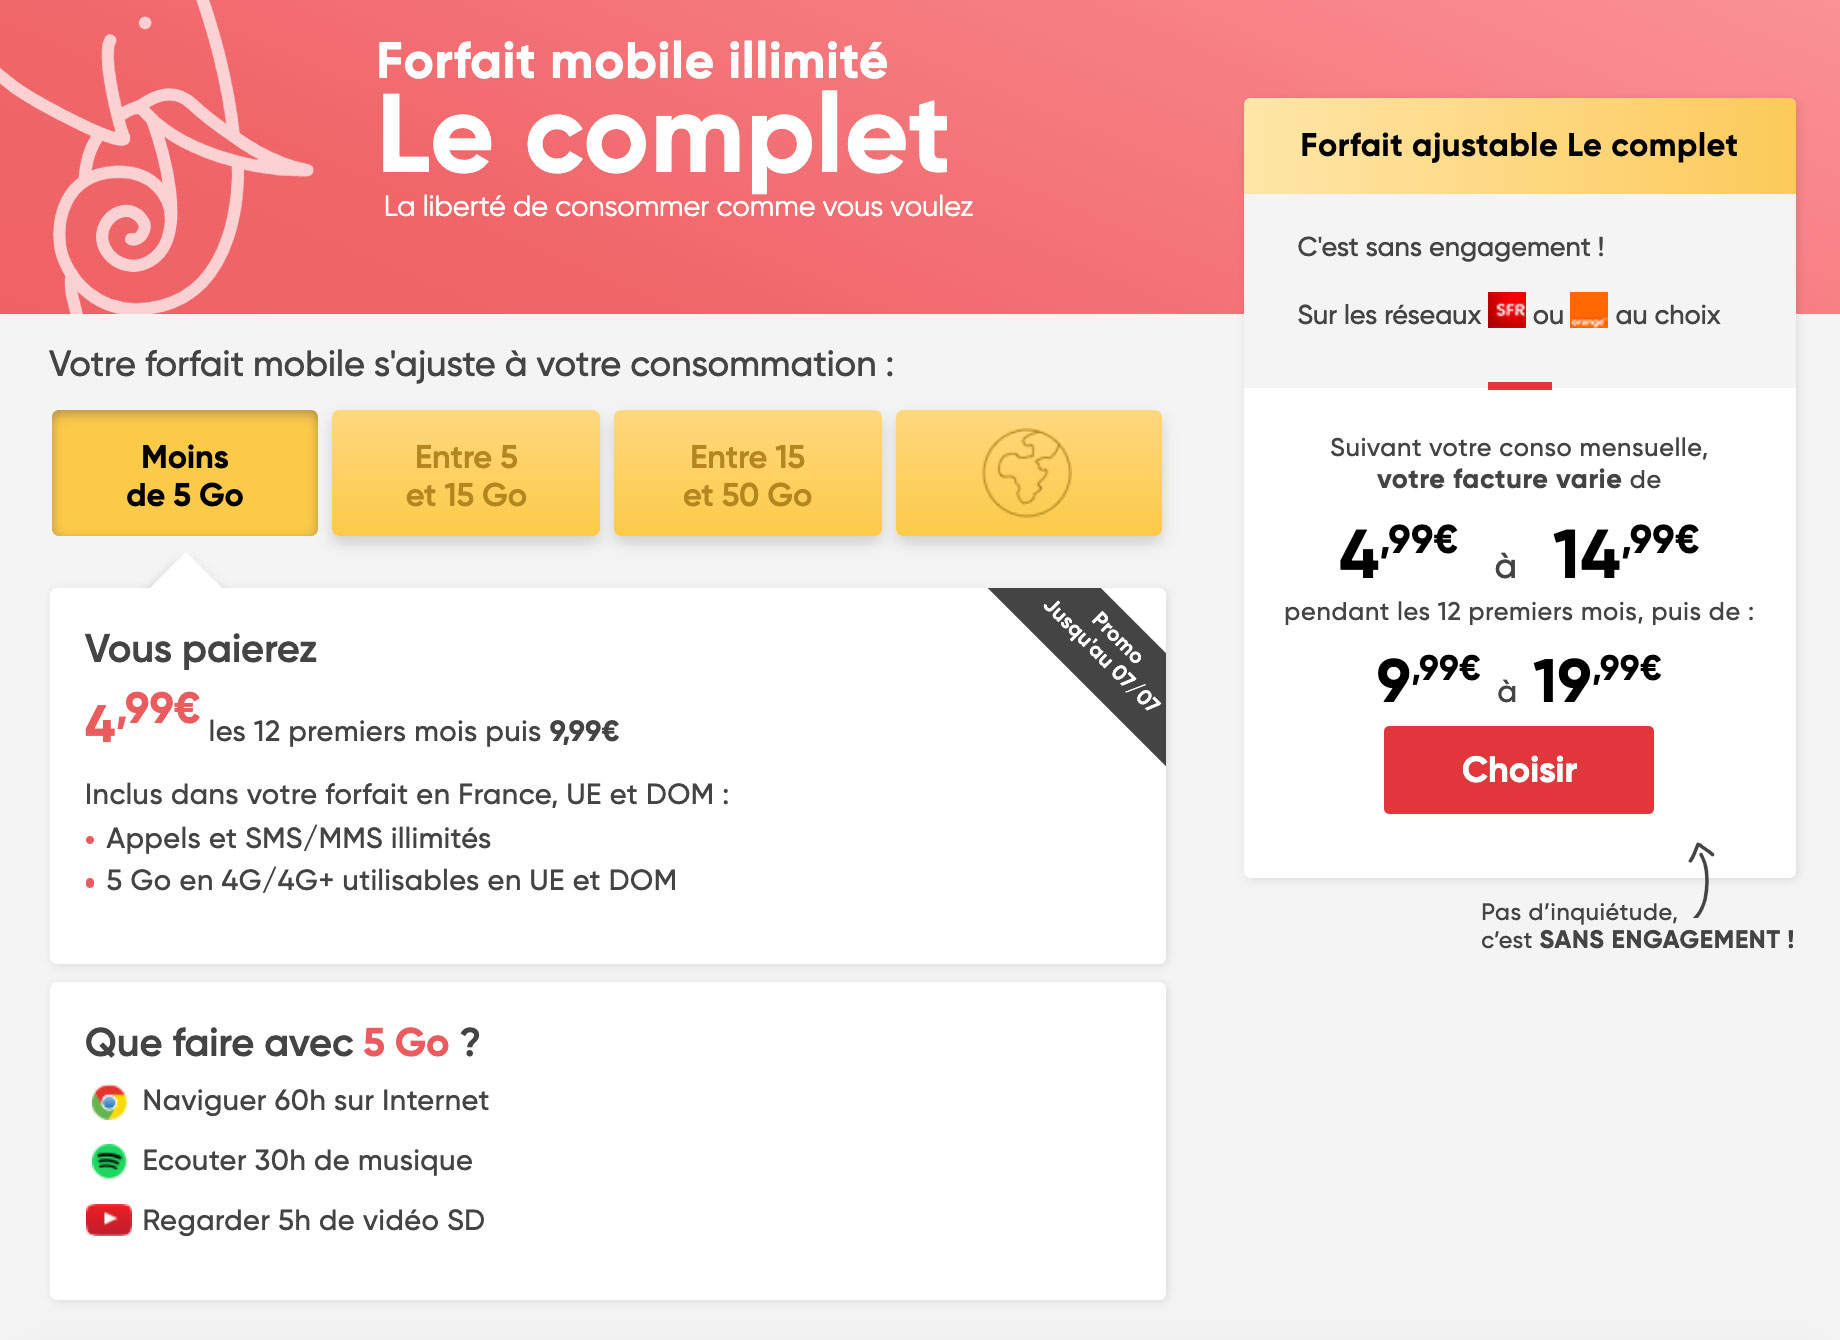 Forfait mobile complet